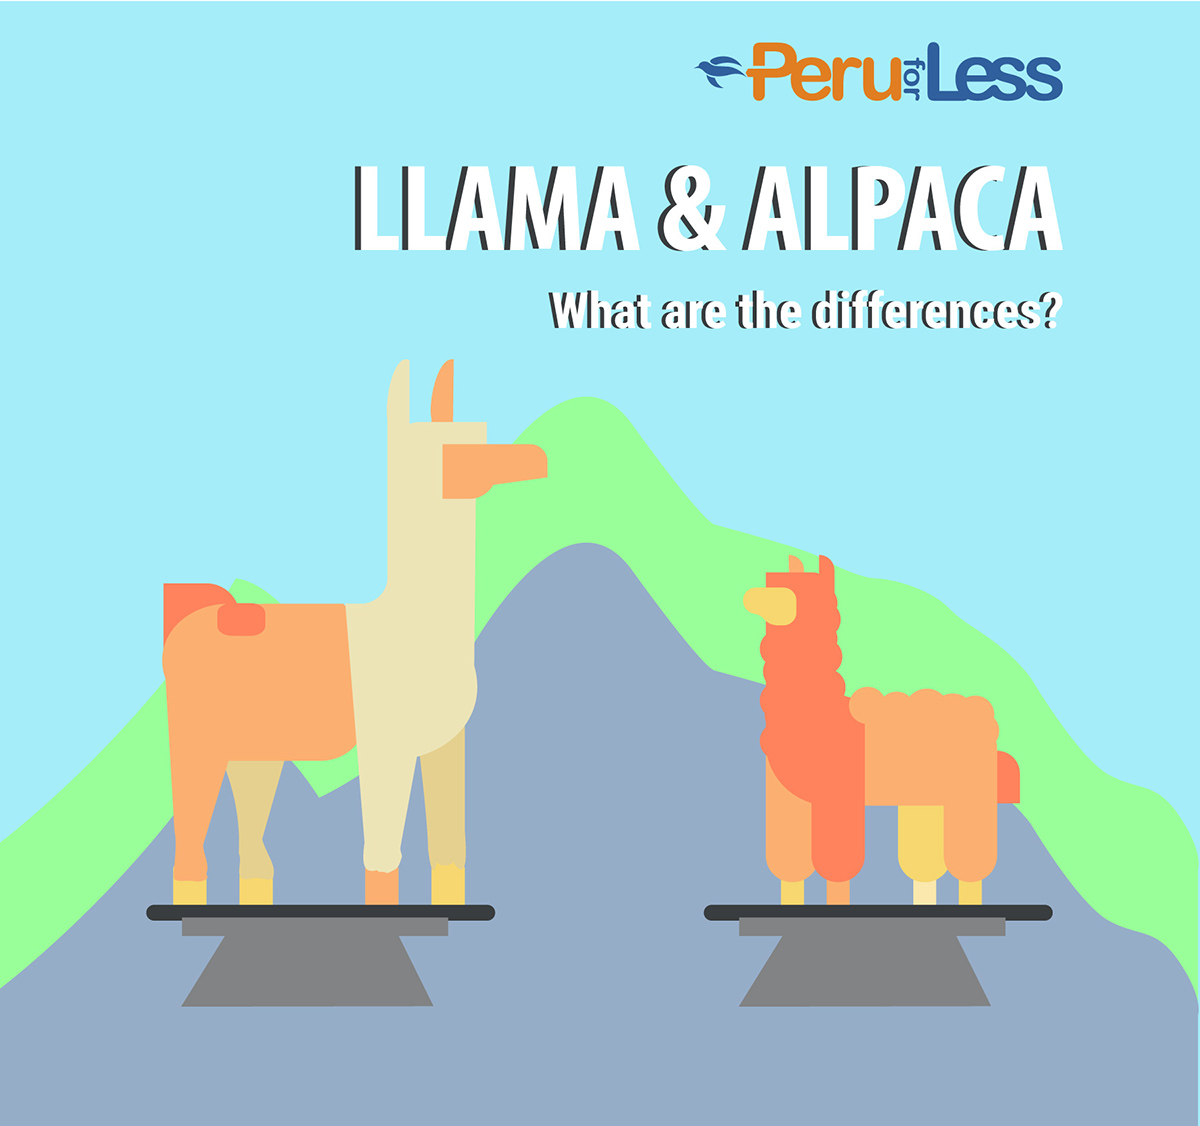 A graphic with a llama and alpaca showing the difference in size, face shape, and ear shape.